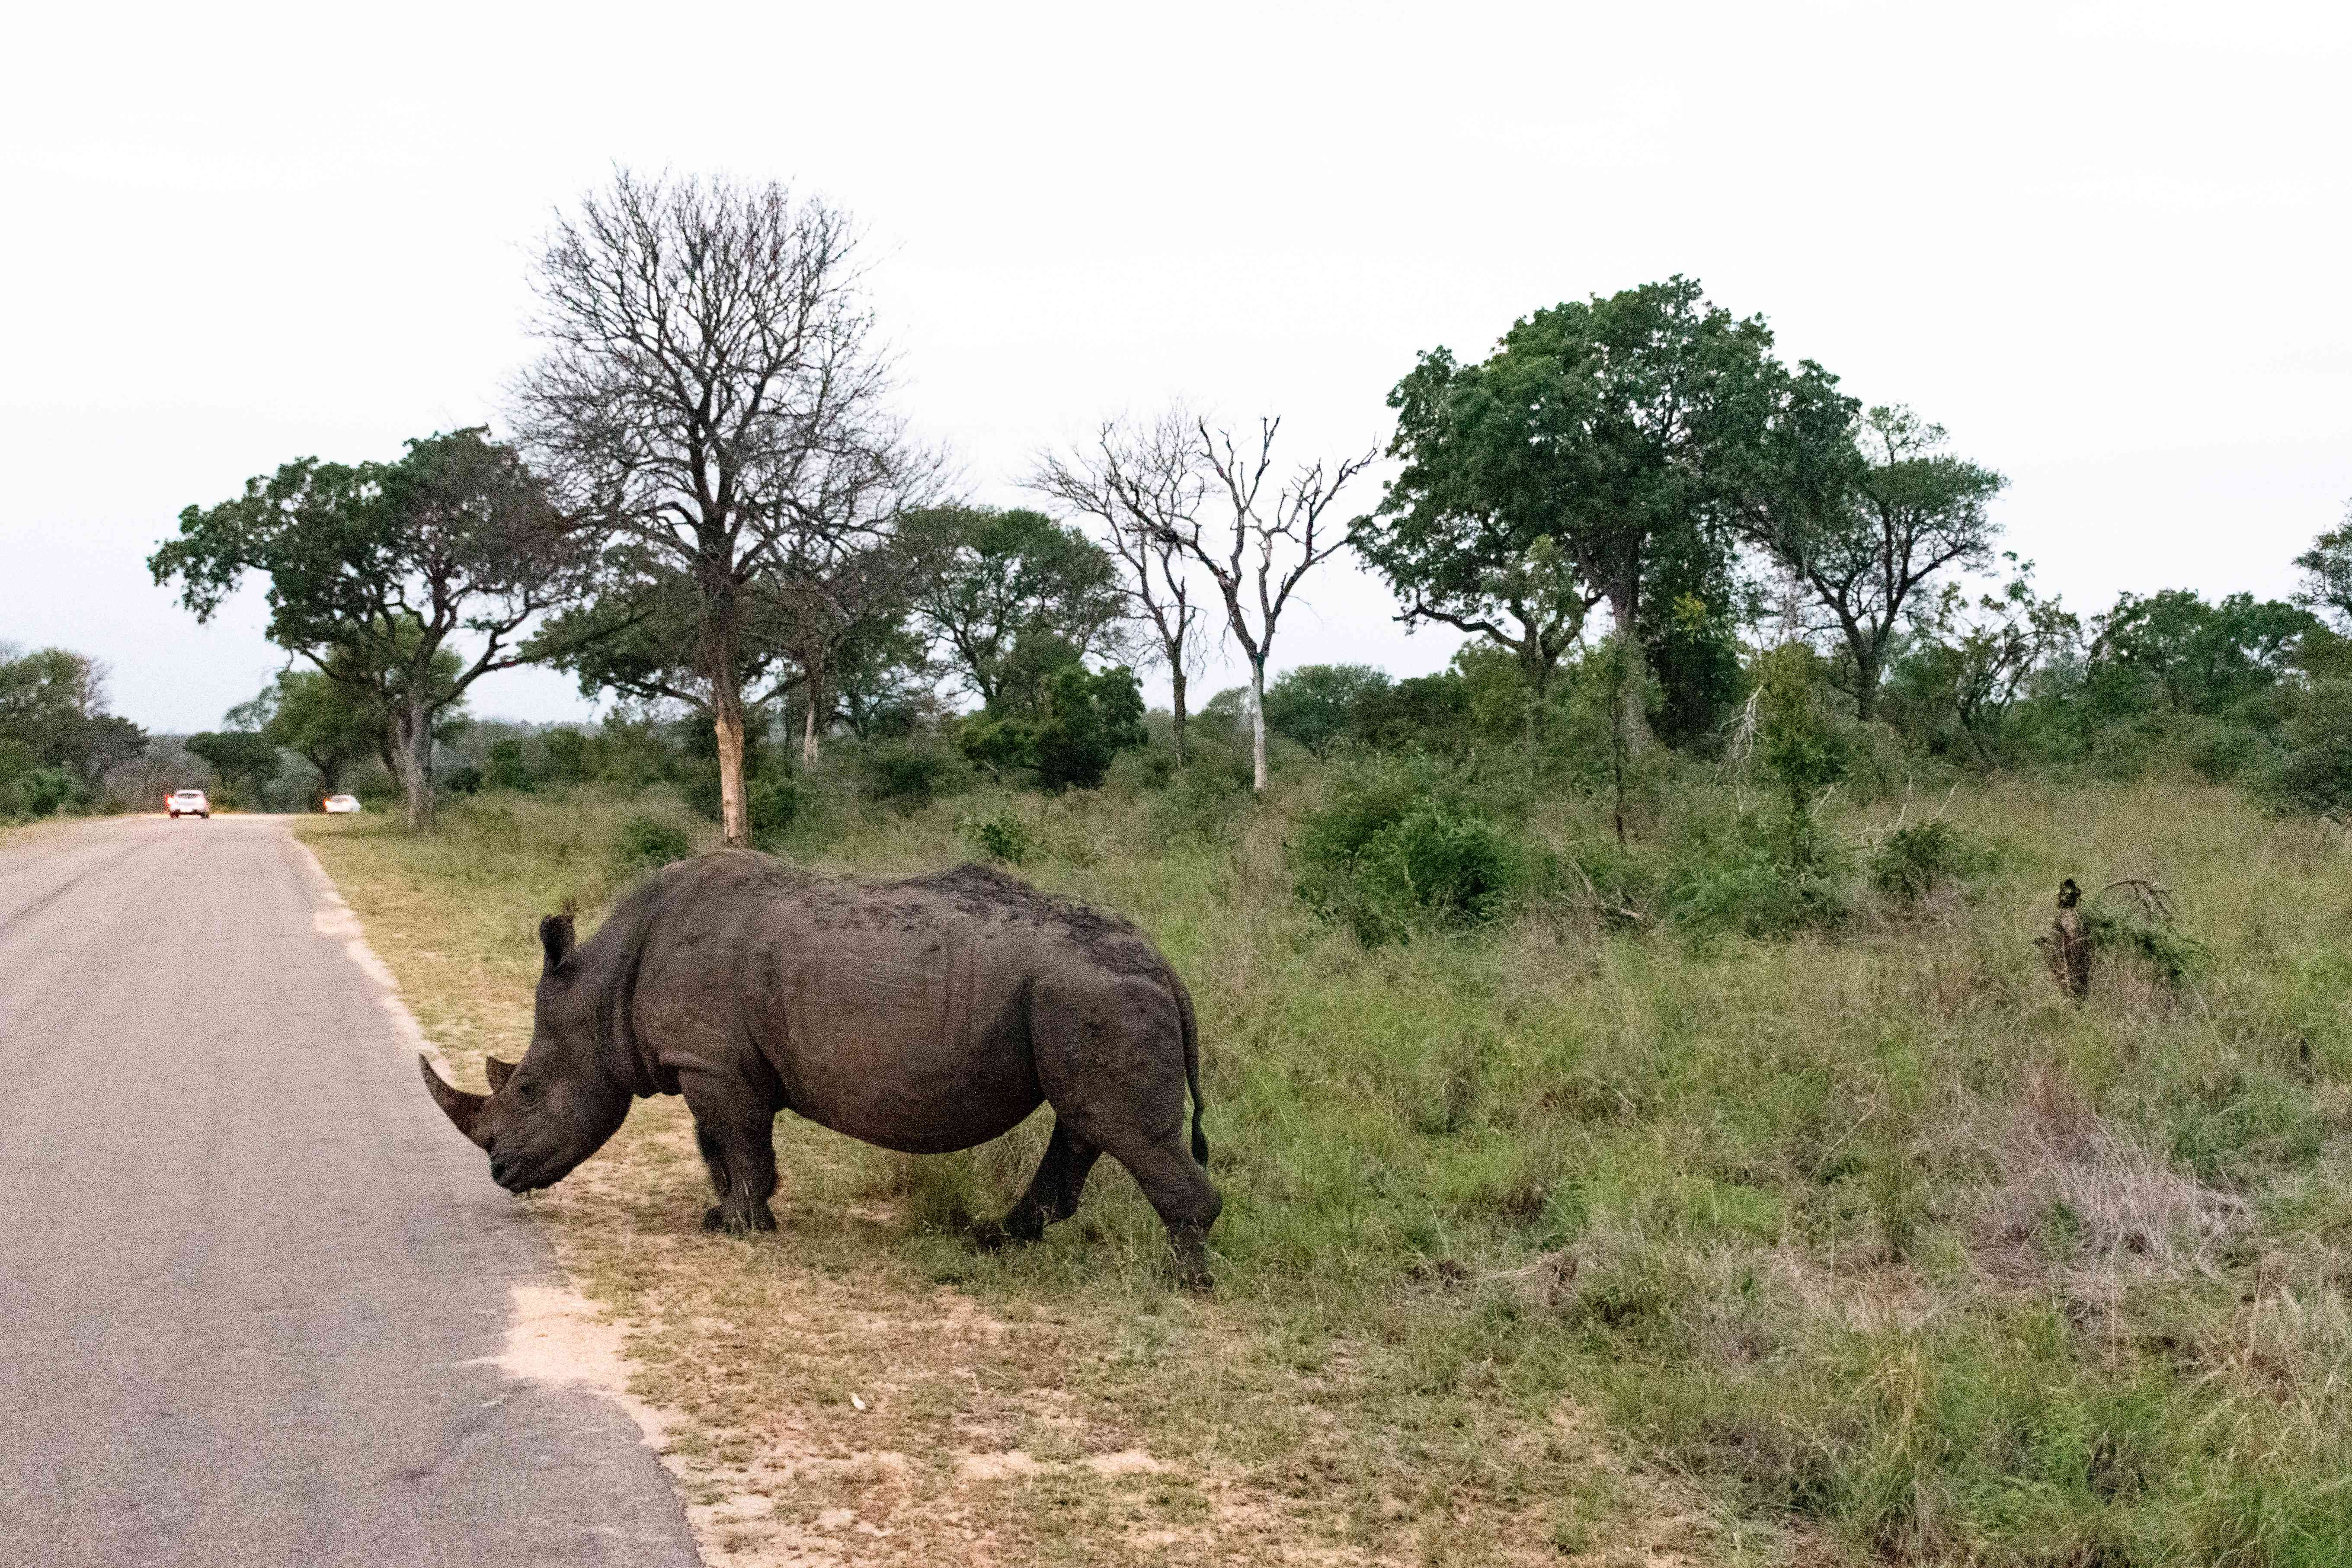 A rhino crossing a pathway in Kruger National Park